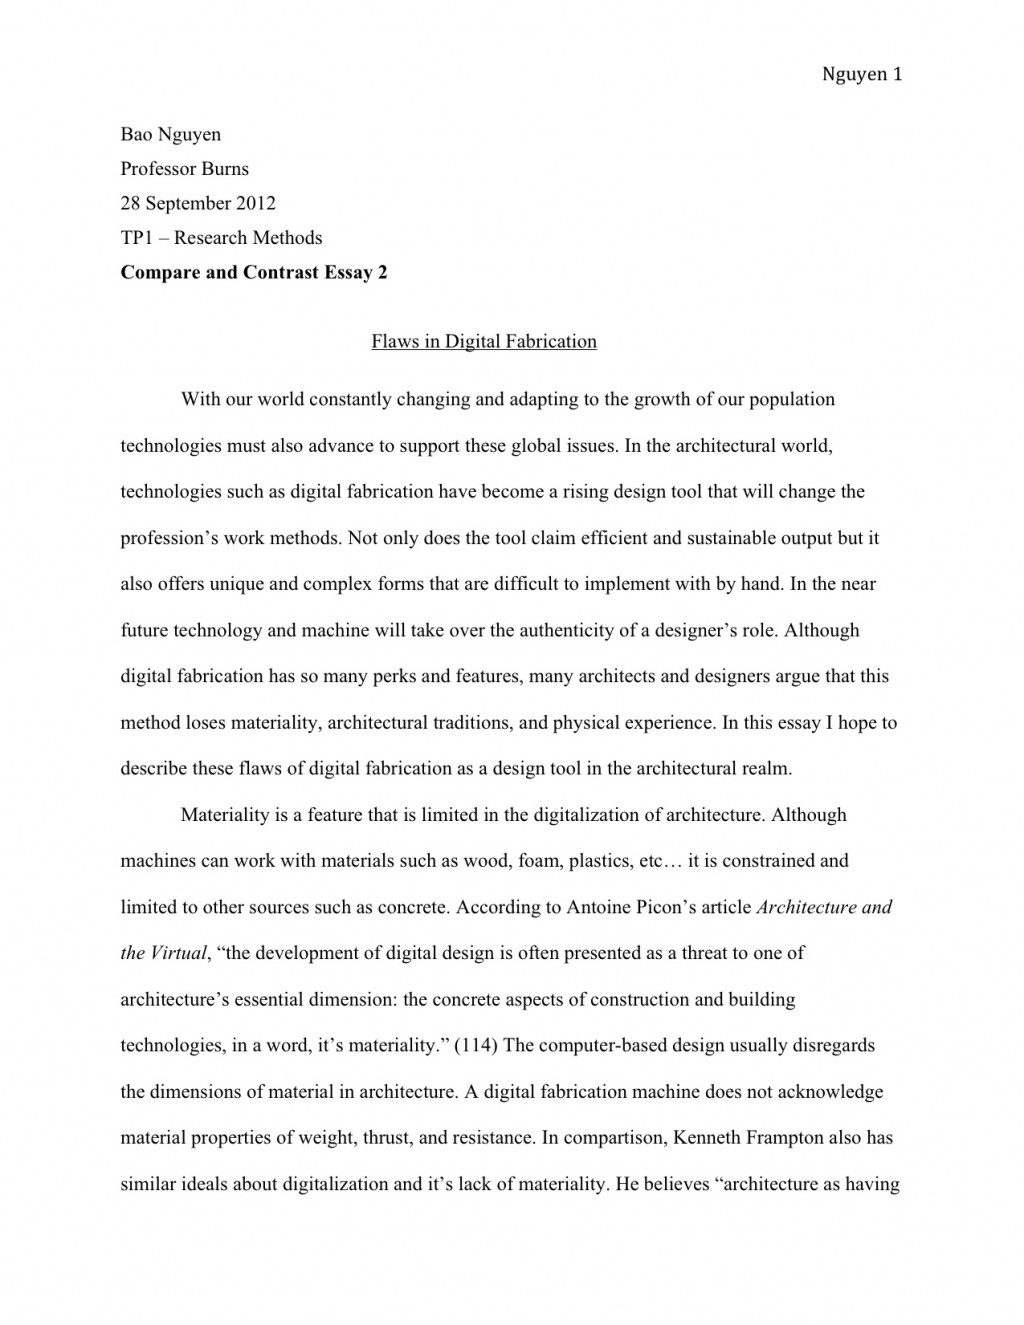 007 Essay Example Good Hooks For Essays Tp1 3 Unforgettable About War Examples Of Expository Heroes Large